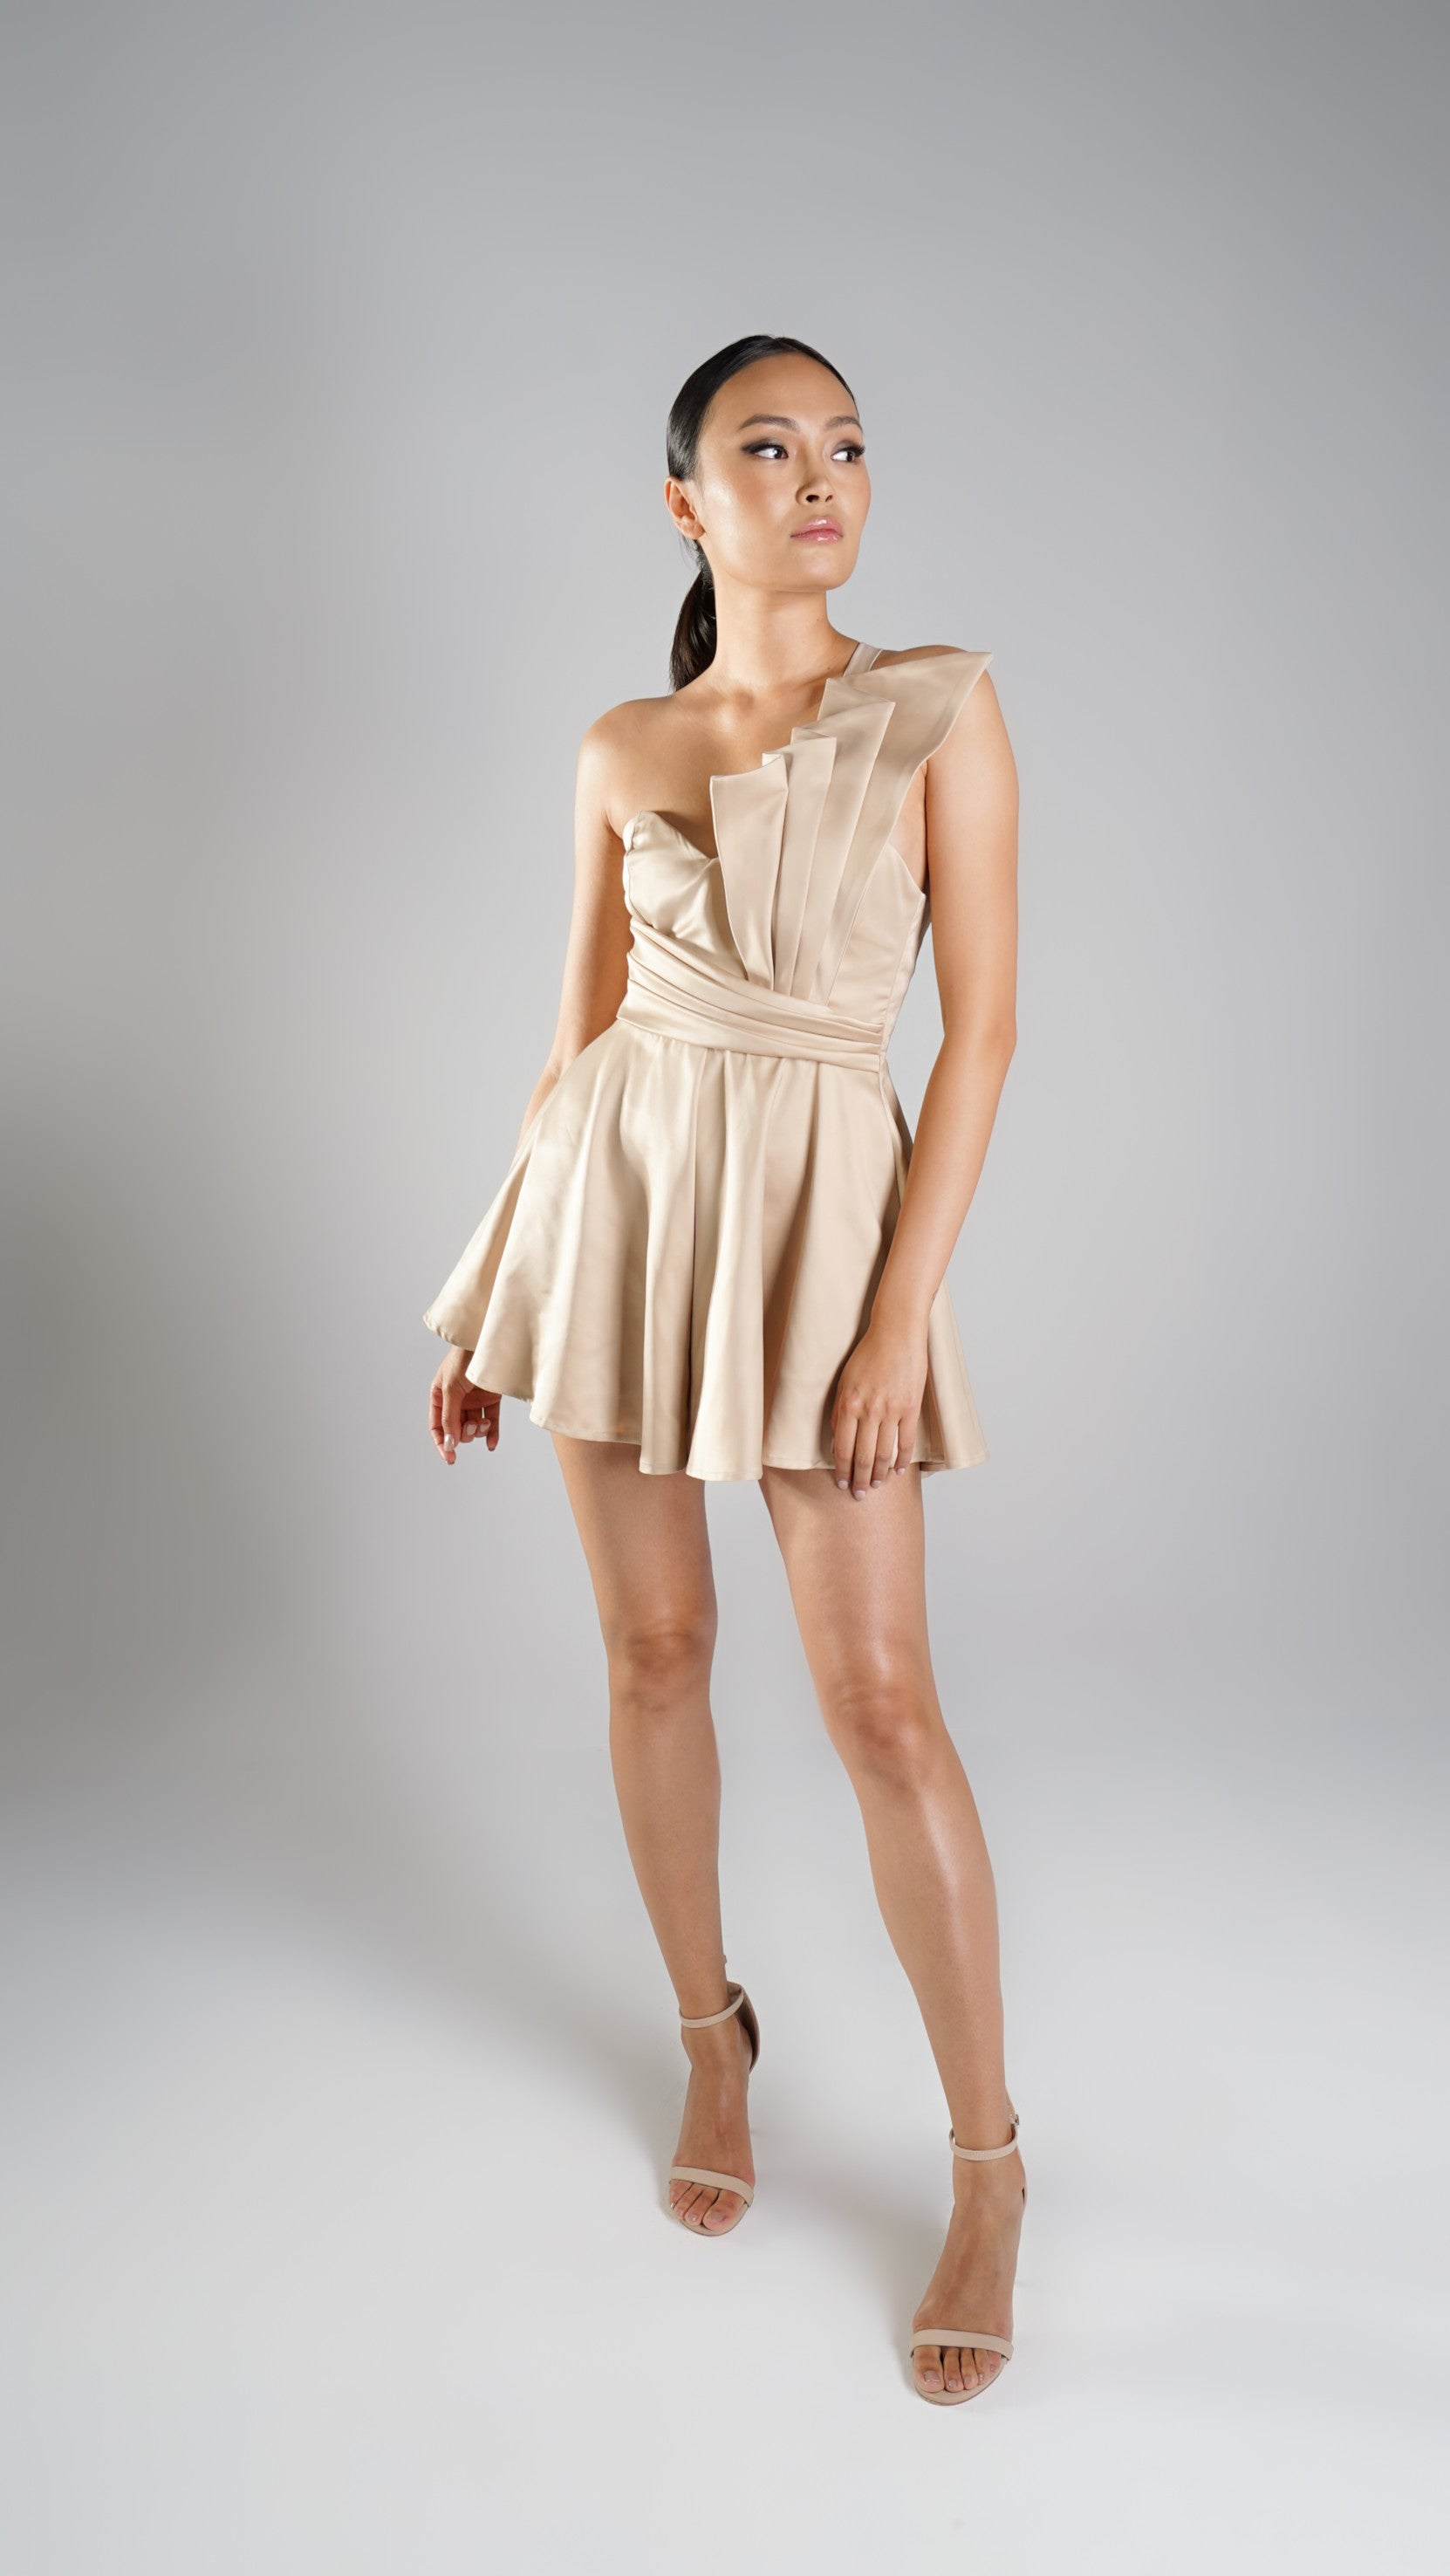 Luna Nude Playsuit